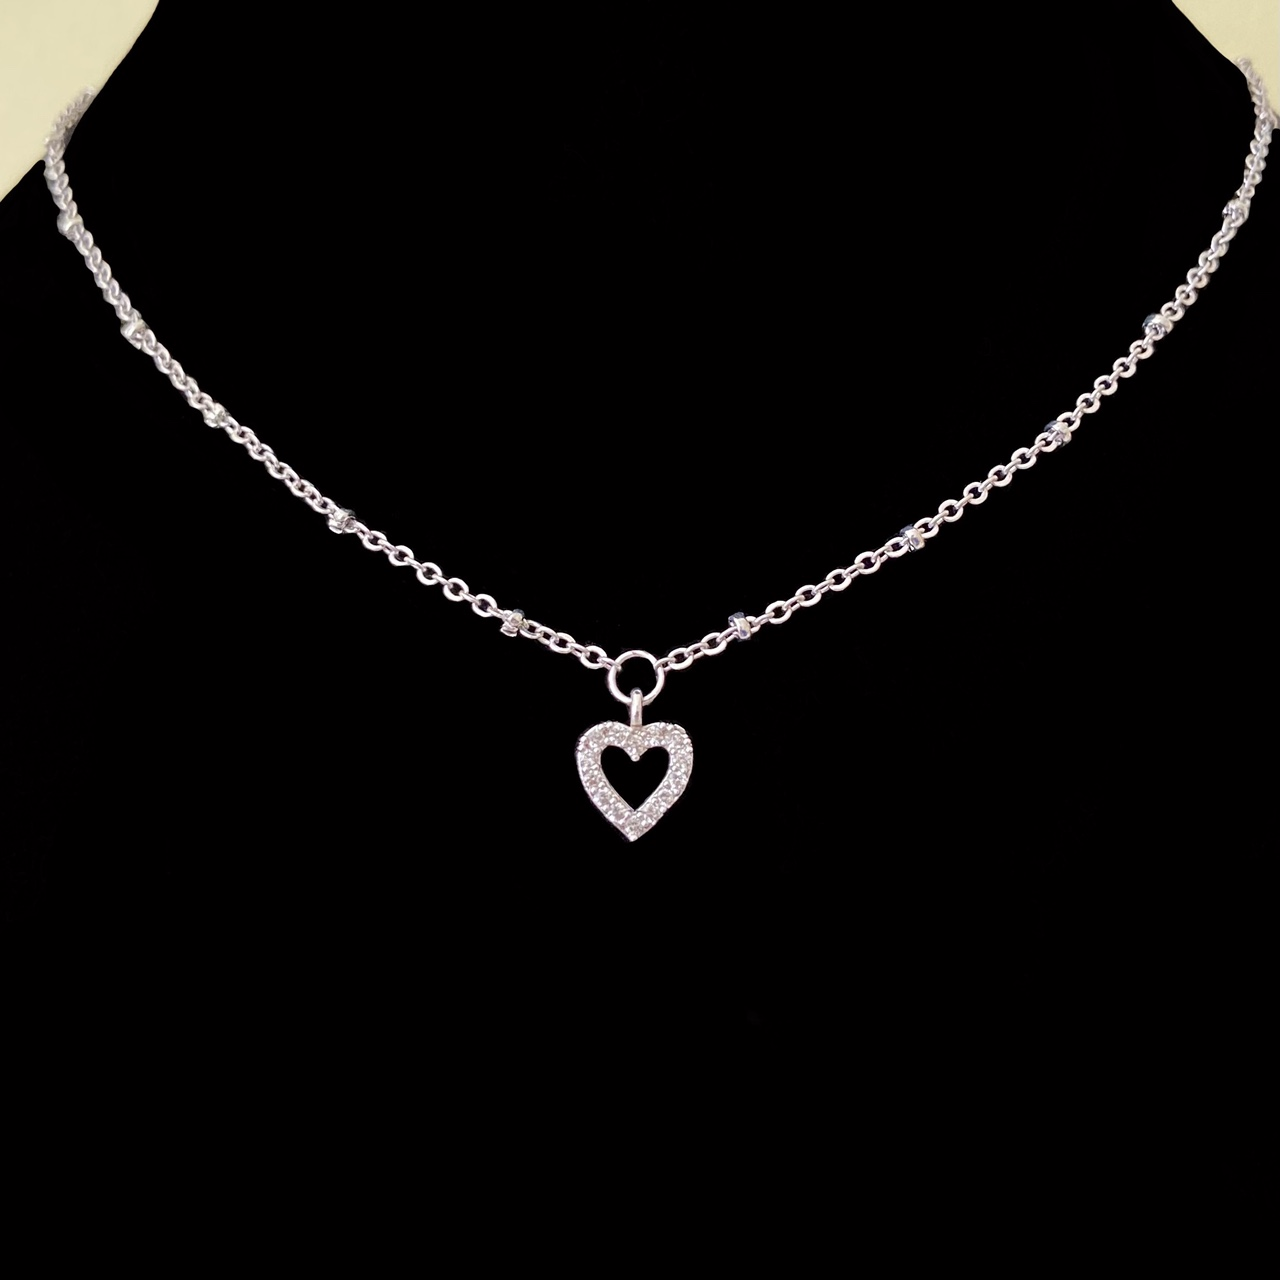 Product Image 1 - Y2K silver plated chain necklace